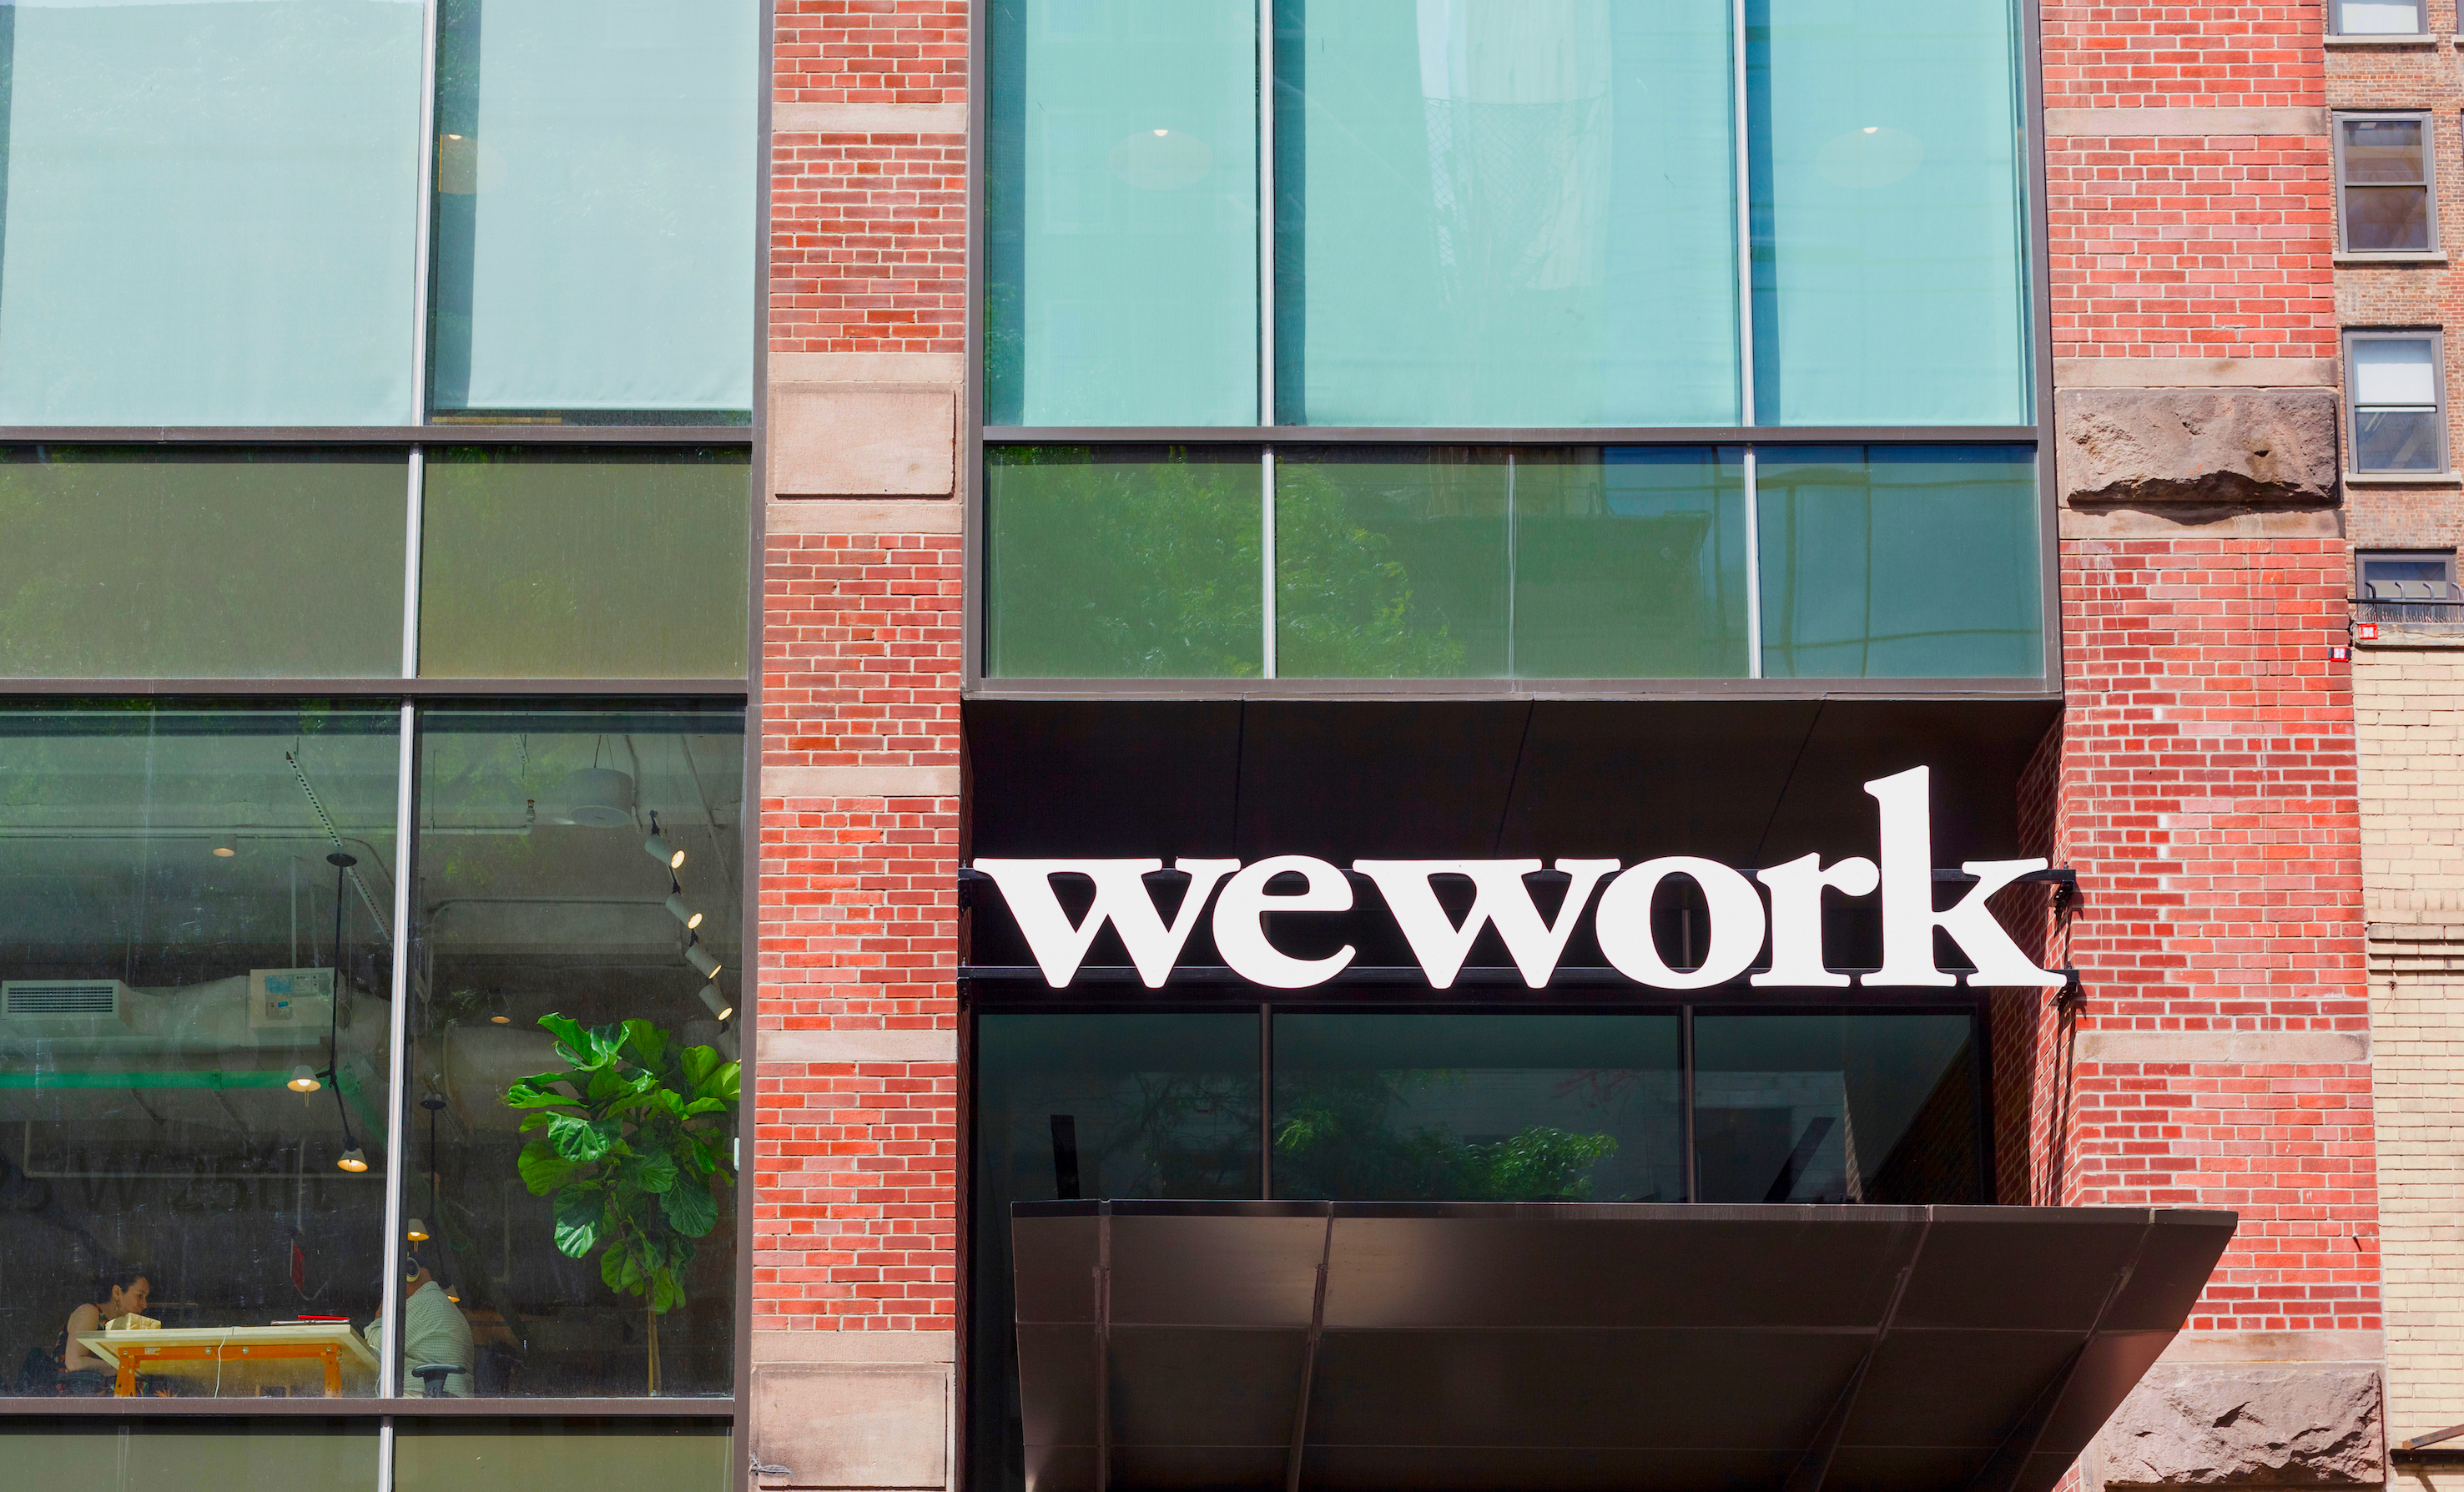 wework office space_05302019